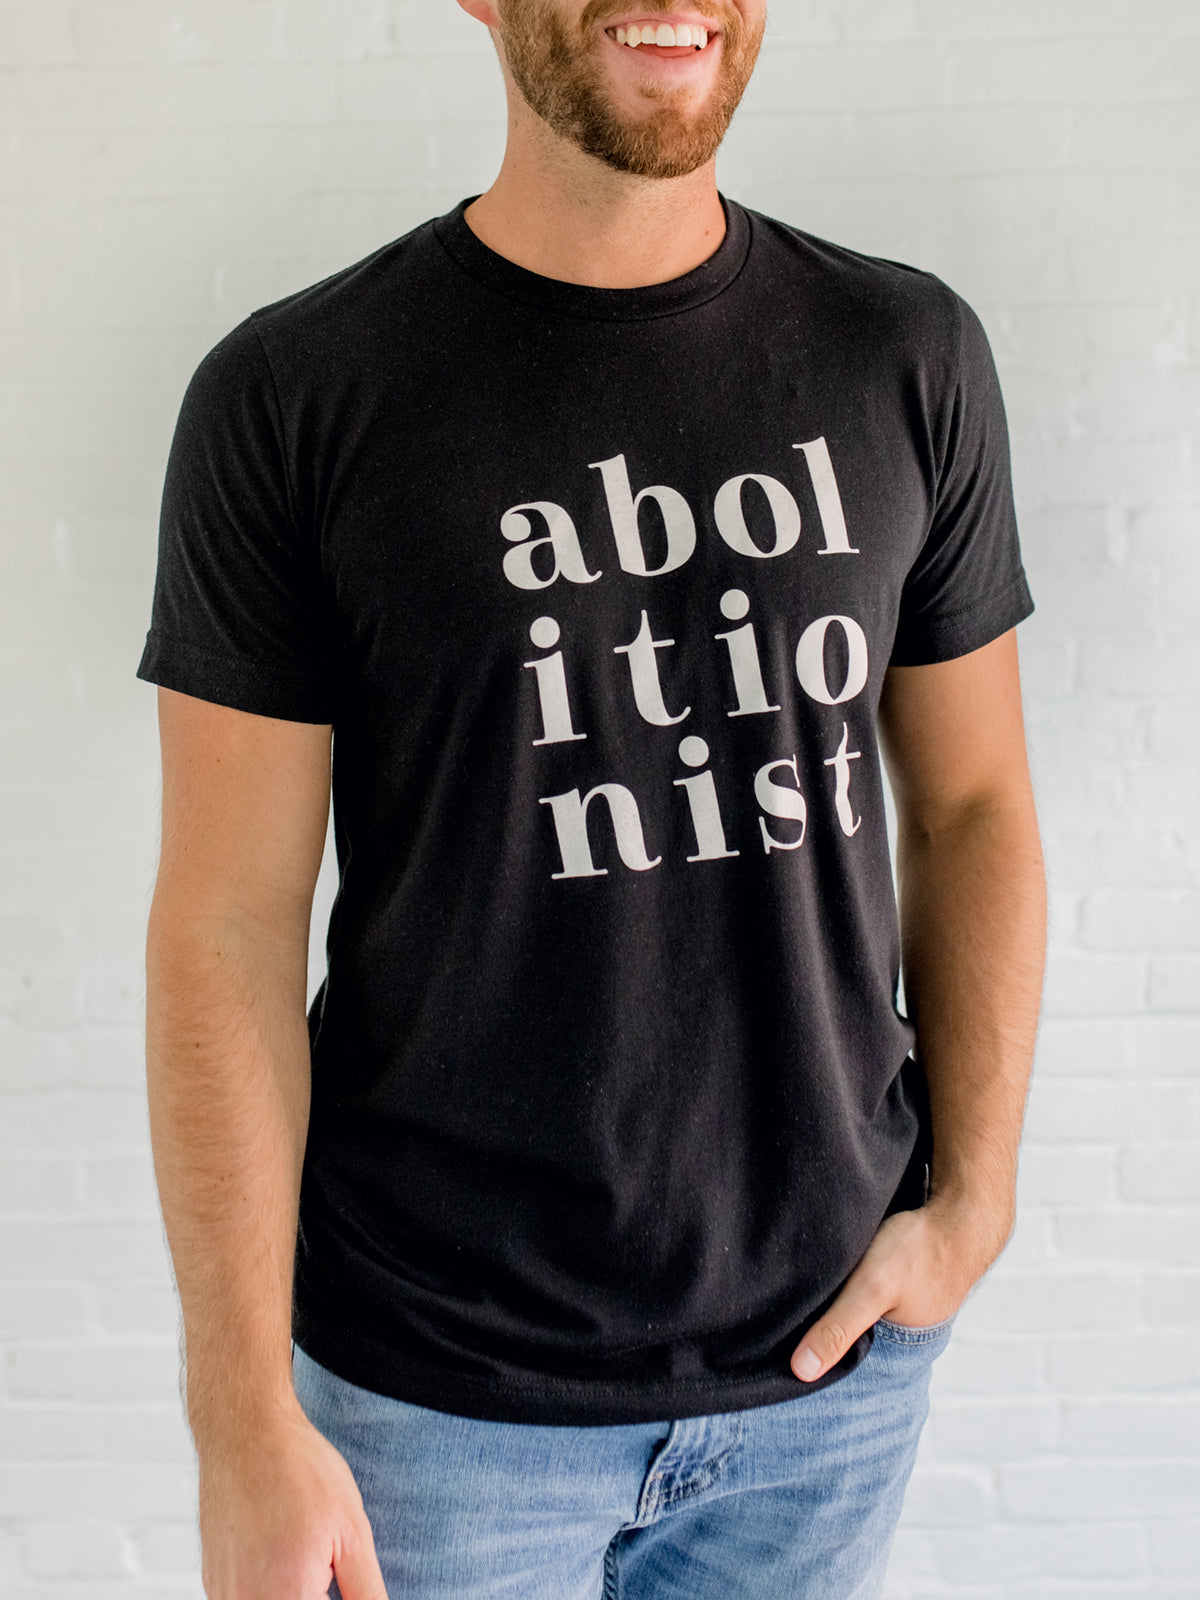 ABOLITIONIST - Black Short Sleeve T-Shirt